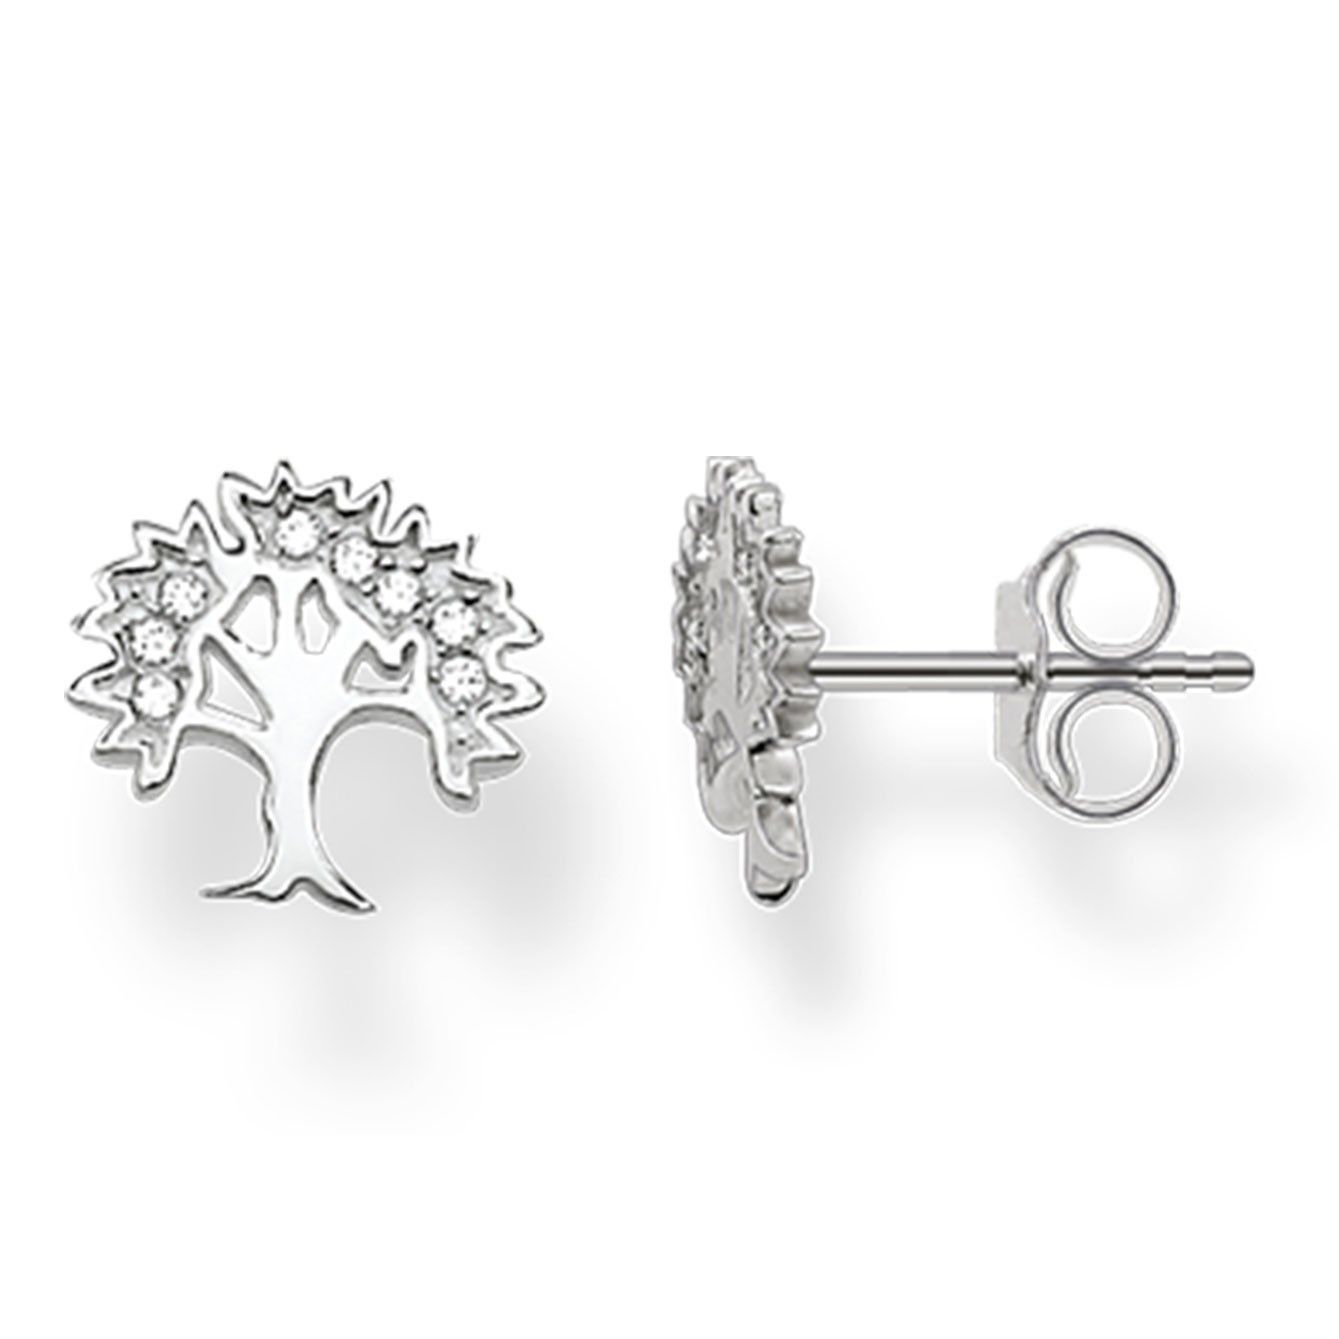 ebc9666af Thomas Sabo Silver Tree of Life Stud Earrings H1870-051-14 | The Jewel